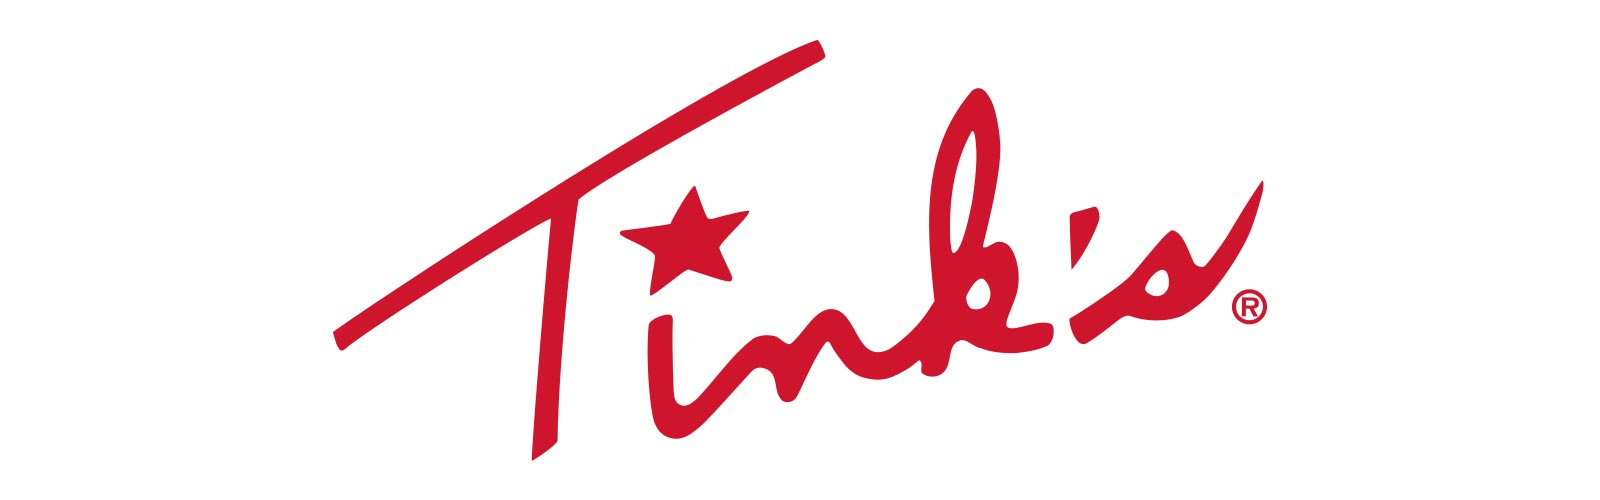 Tink's Introduces Exciting New Dispensers, Attractants for Deer Hunters